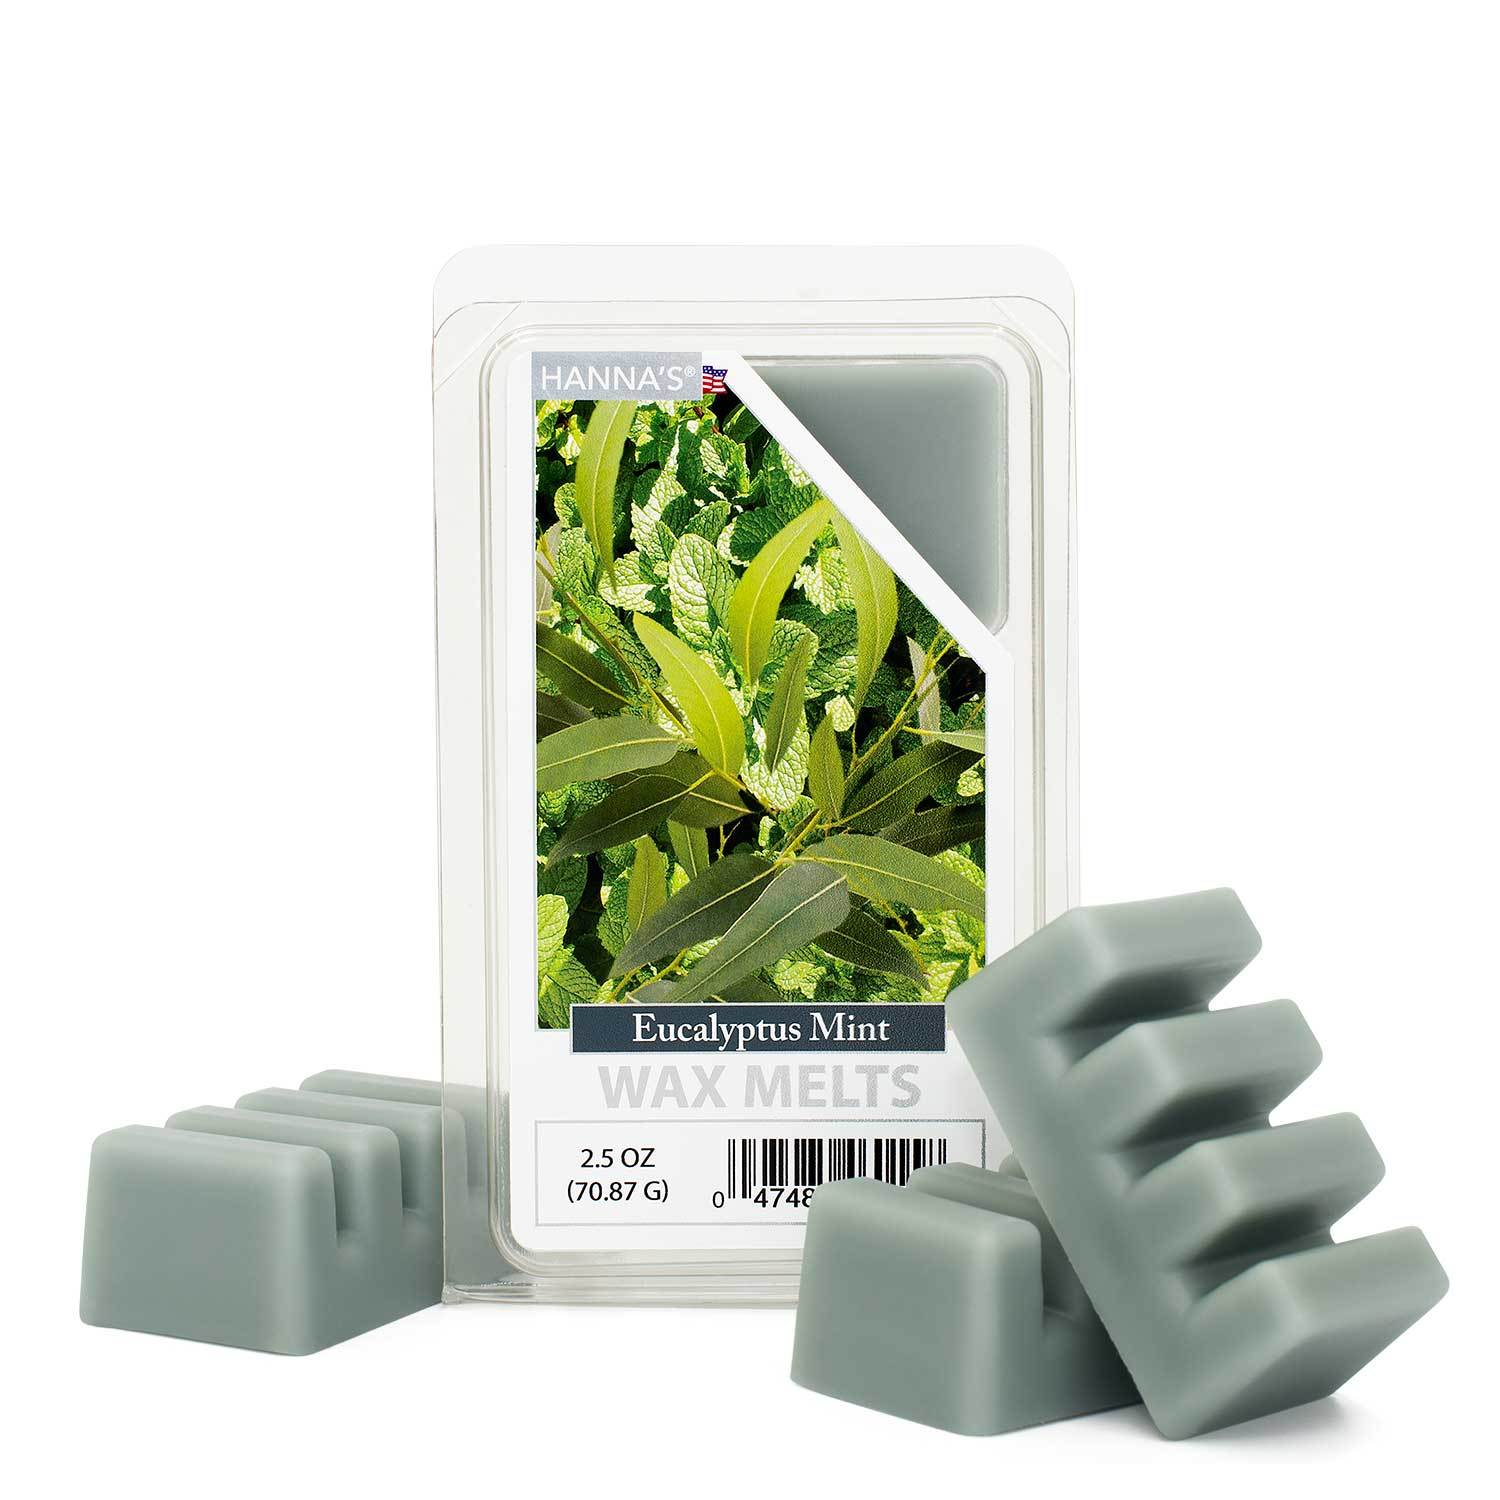 Eucalyptus Mint Wax Melts 6 Pack Melts Candlemart.com $ 12.99